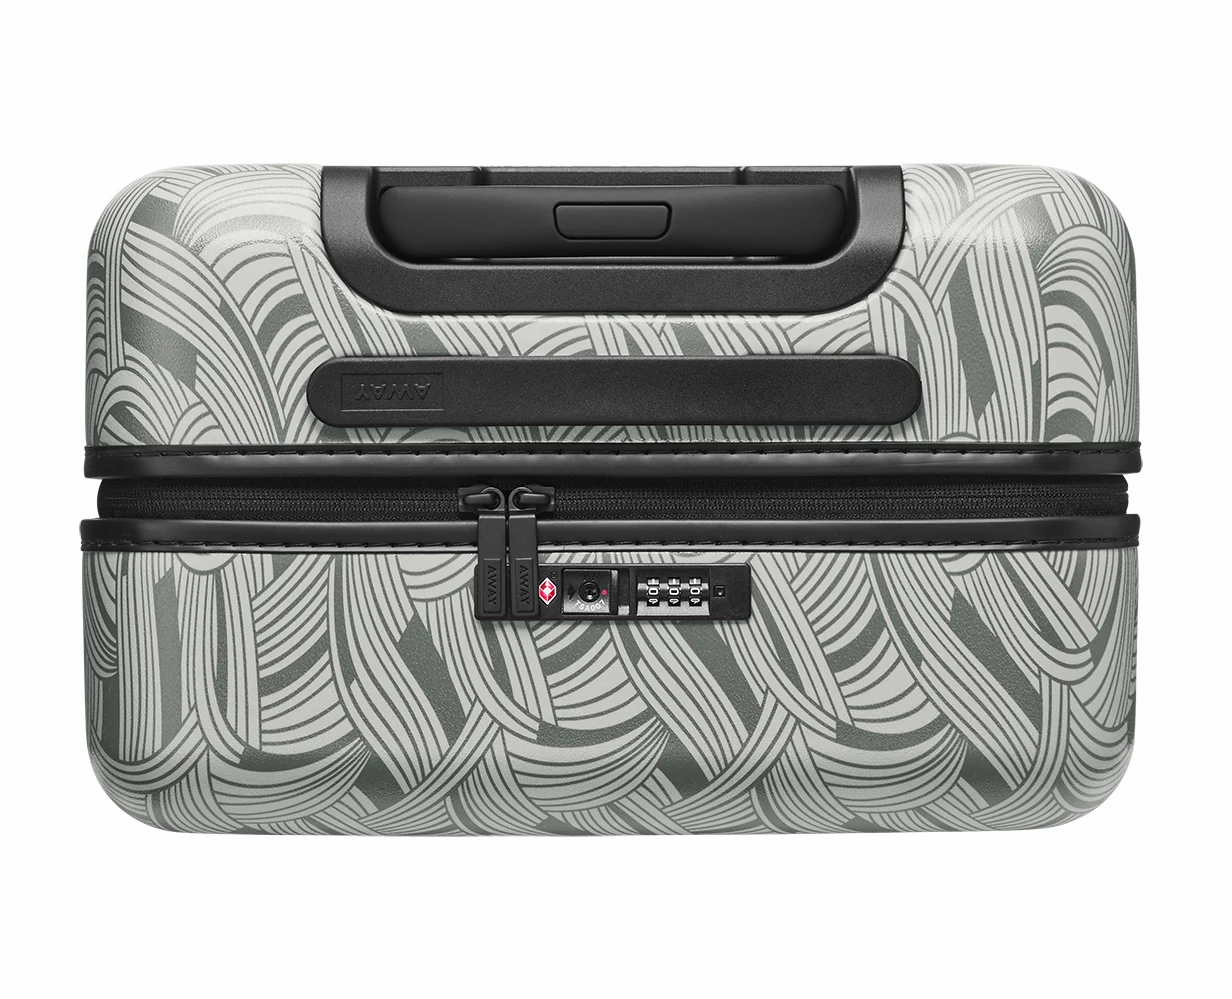 Close TSA approved lock-view of the Away Bigger Carry-On PC in the color Light Swirl.